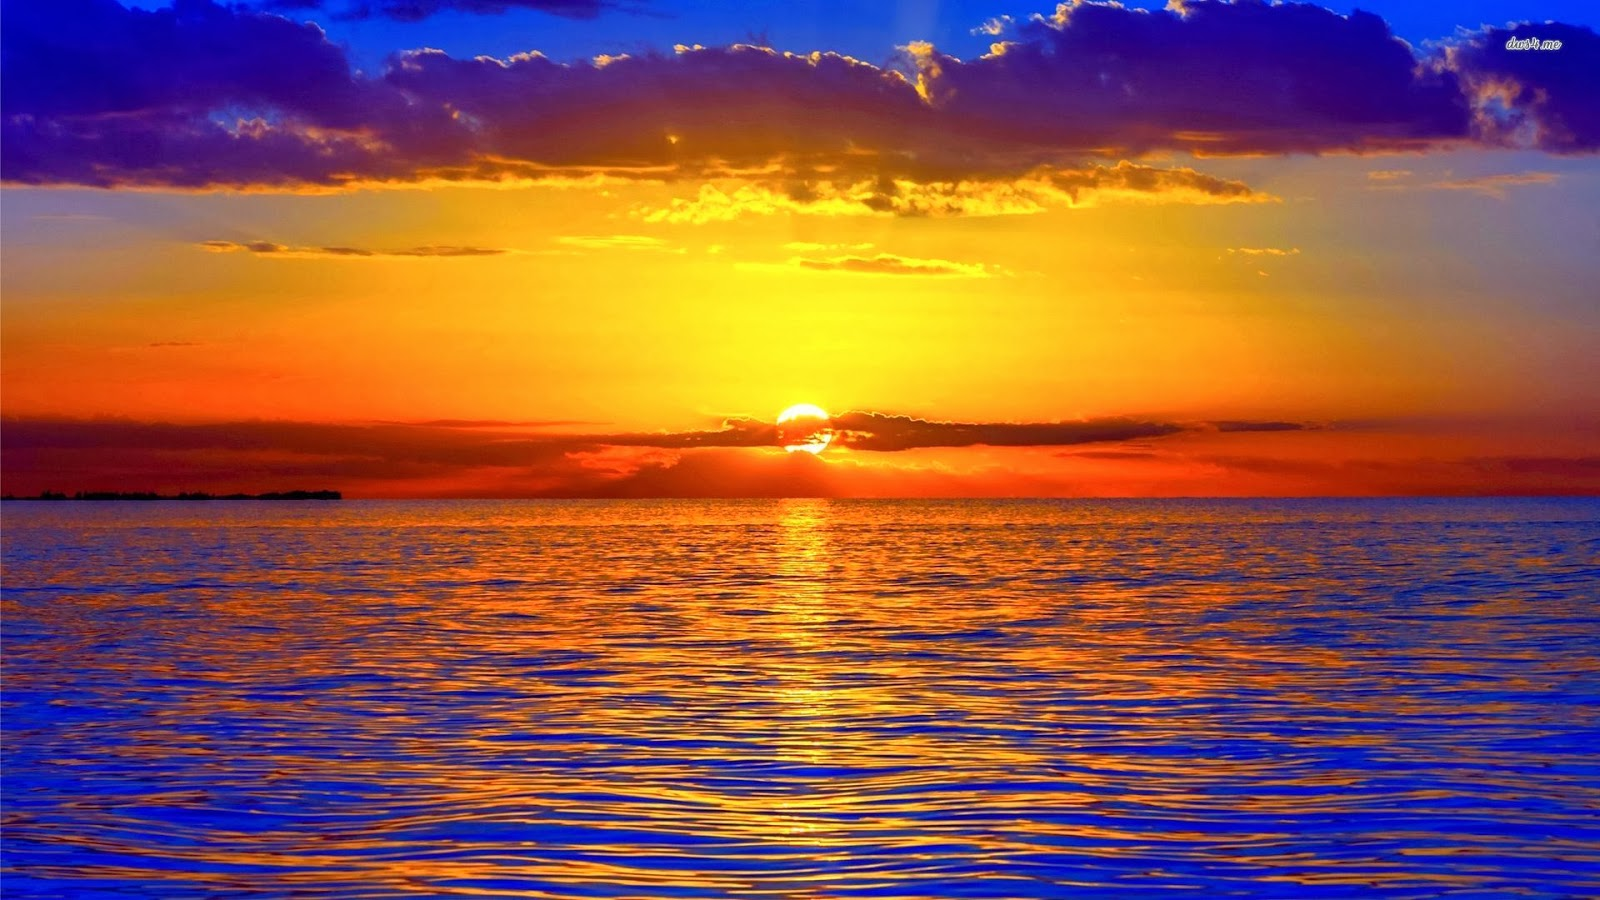 Beach Sunset HD Wallpapers - Wallpapers Free